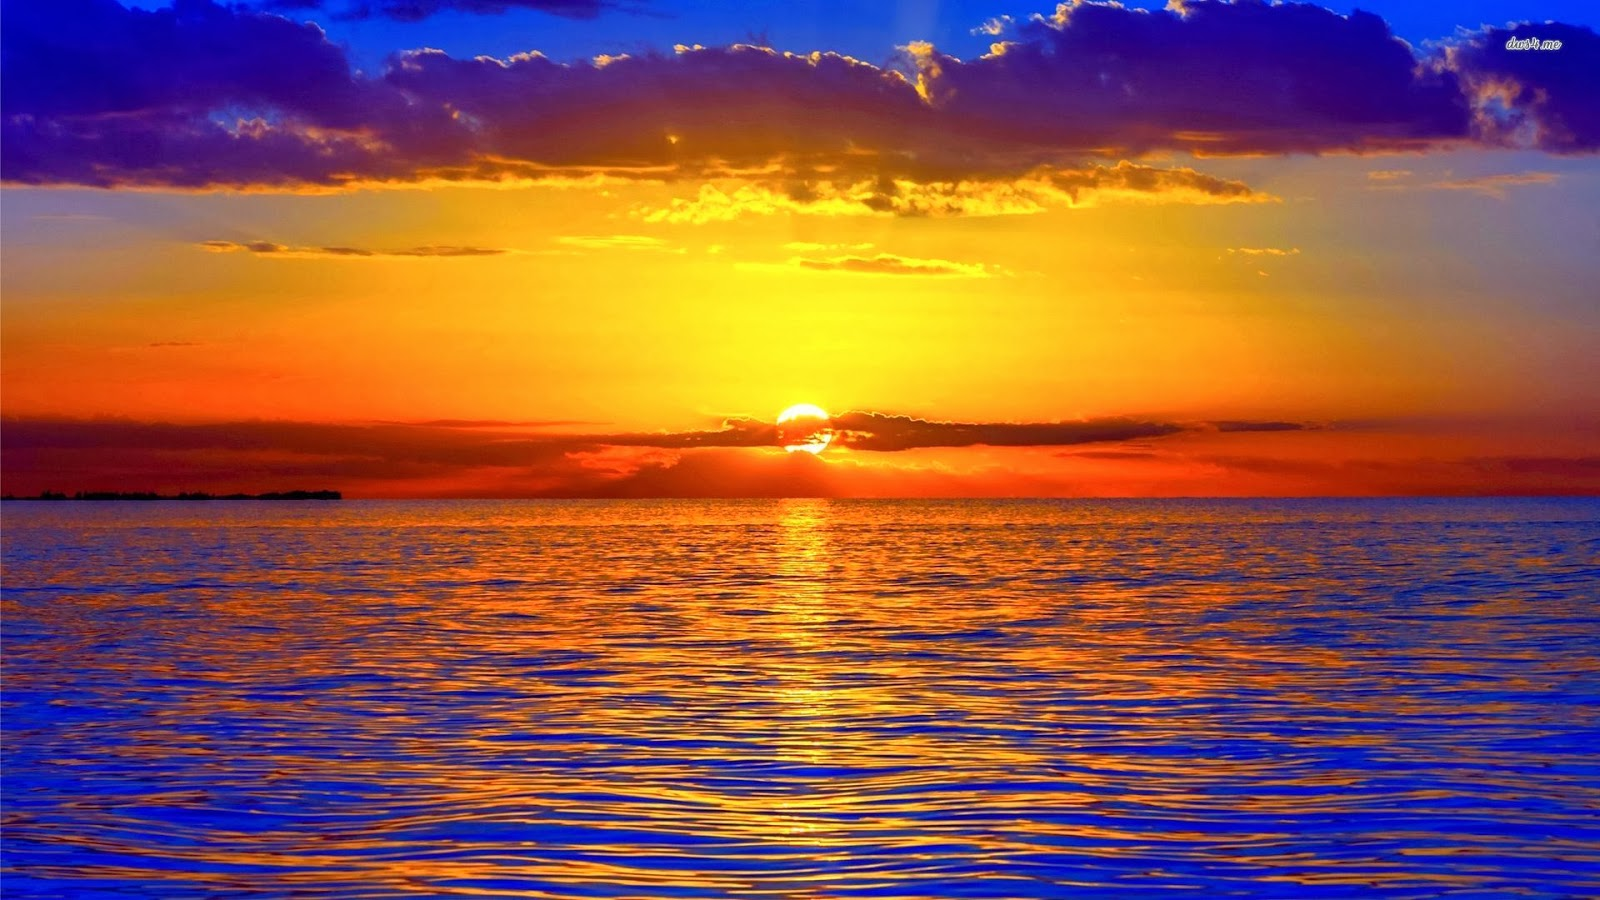 Beach Sunset HD Wallpapers - Wallpapers Free